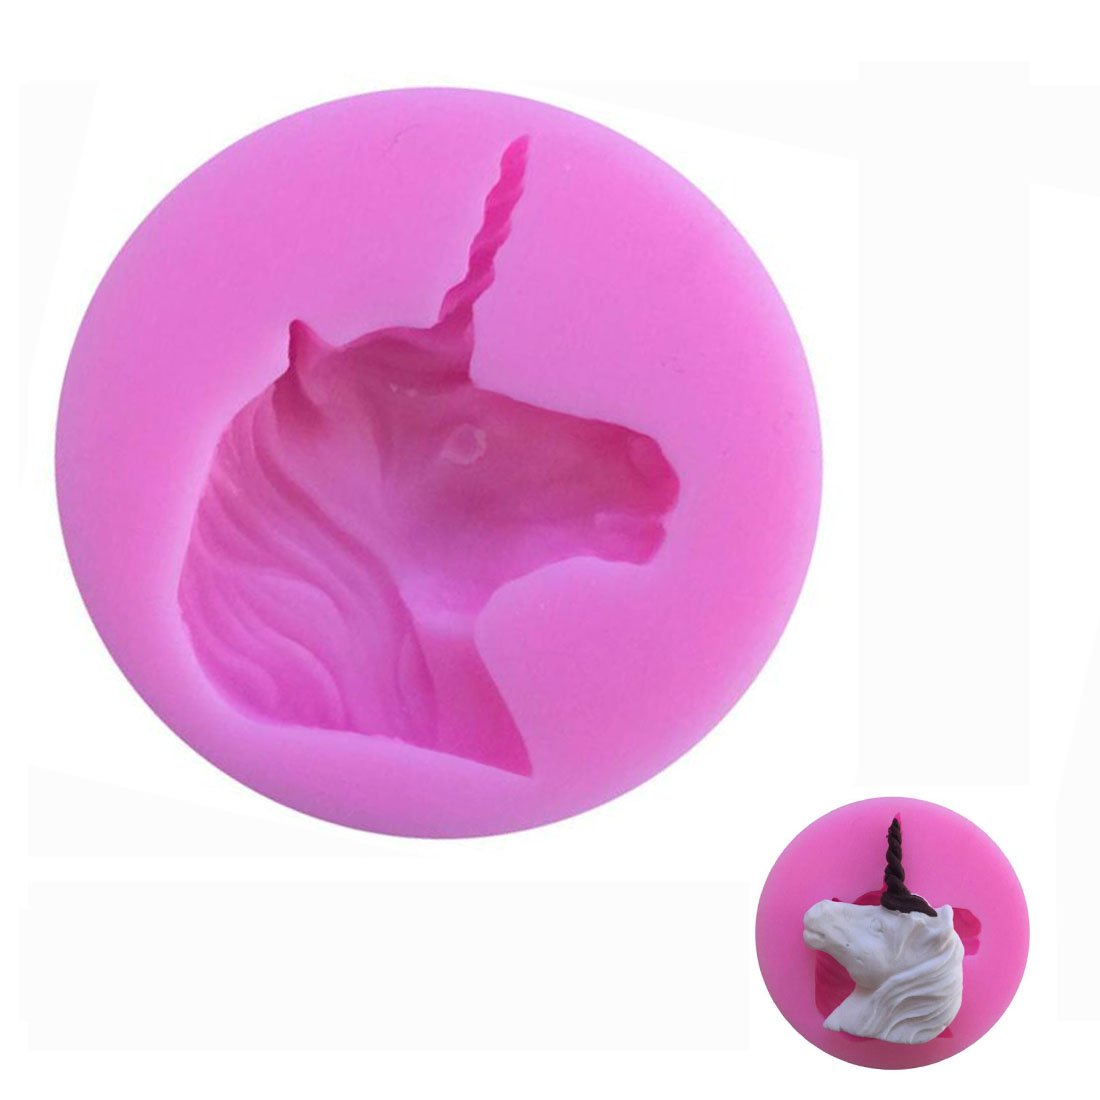 WJSYSHOP Unicorn Shape Silicone Chocolate Fondant Biscuit Mold Cake Decorating Baking Mould - Unicorn